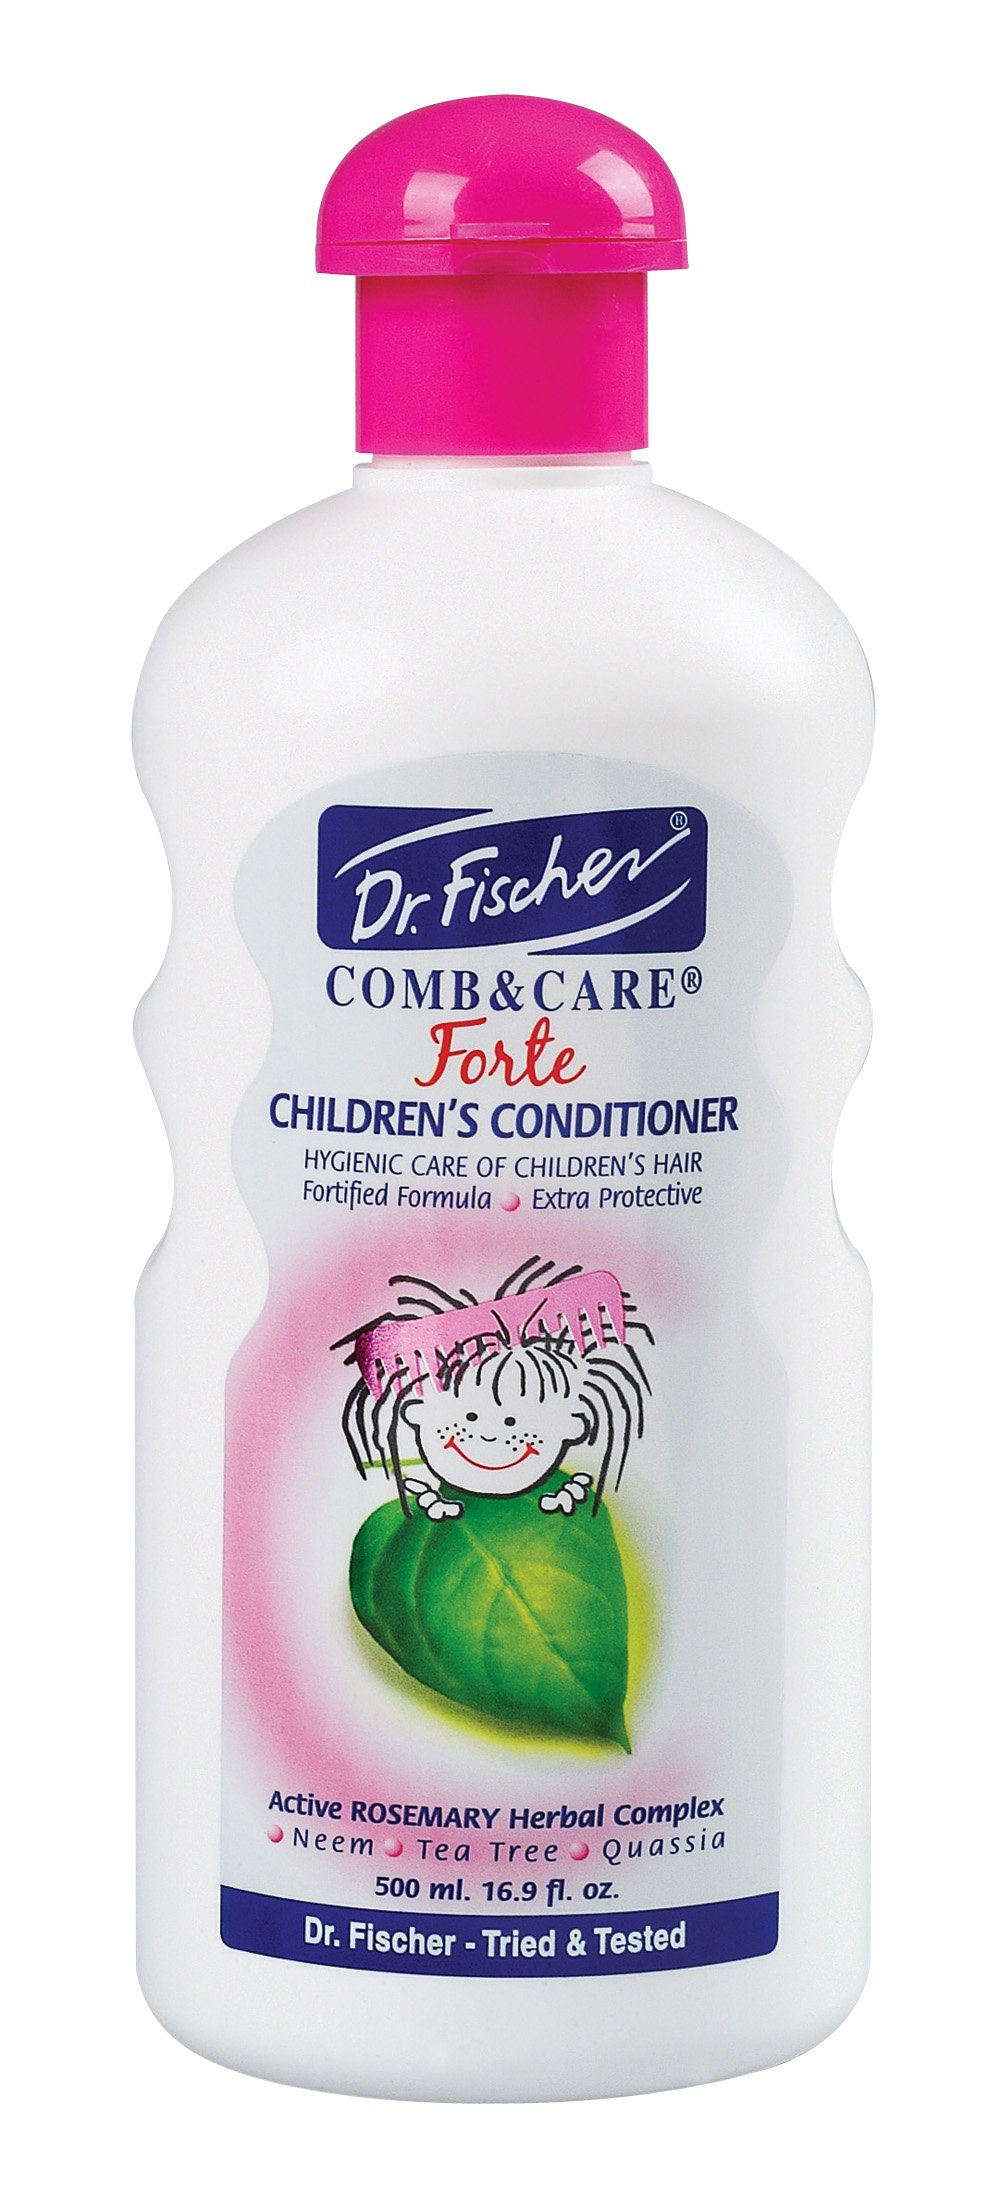 Dr. Fischer Comb&Care Conditioner Forte